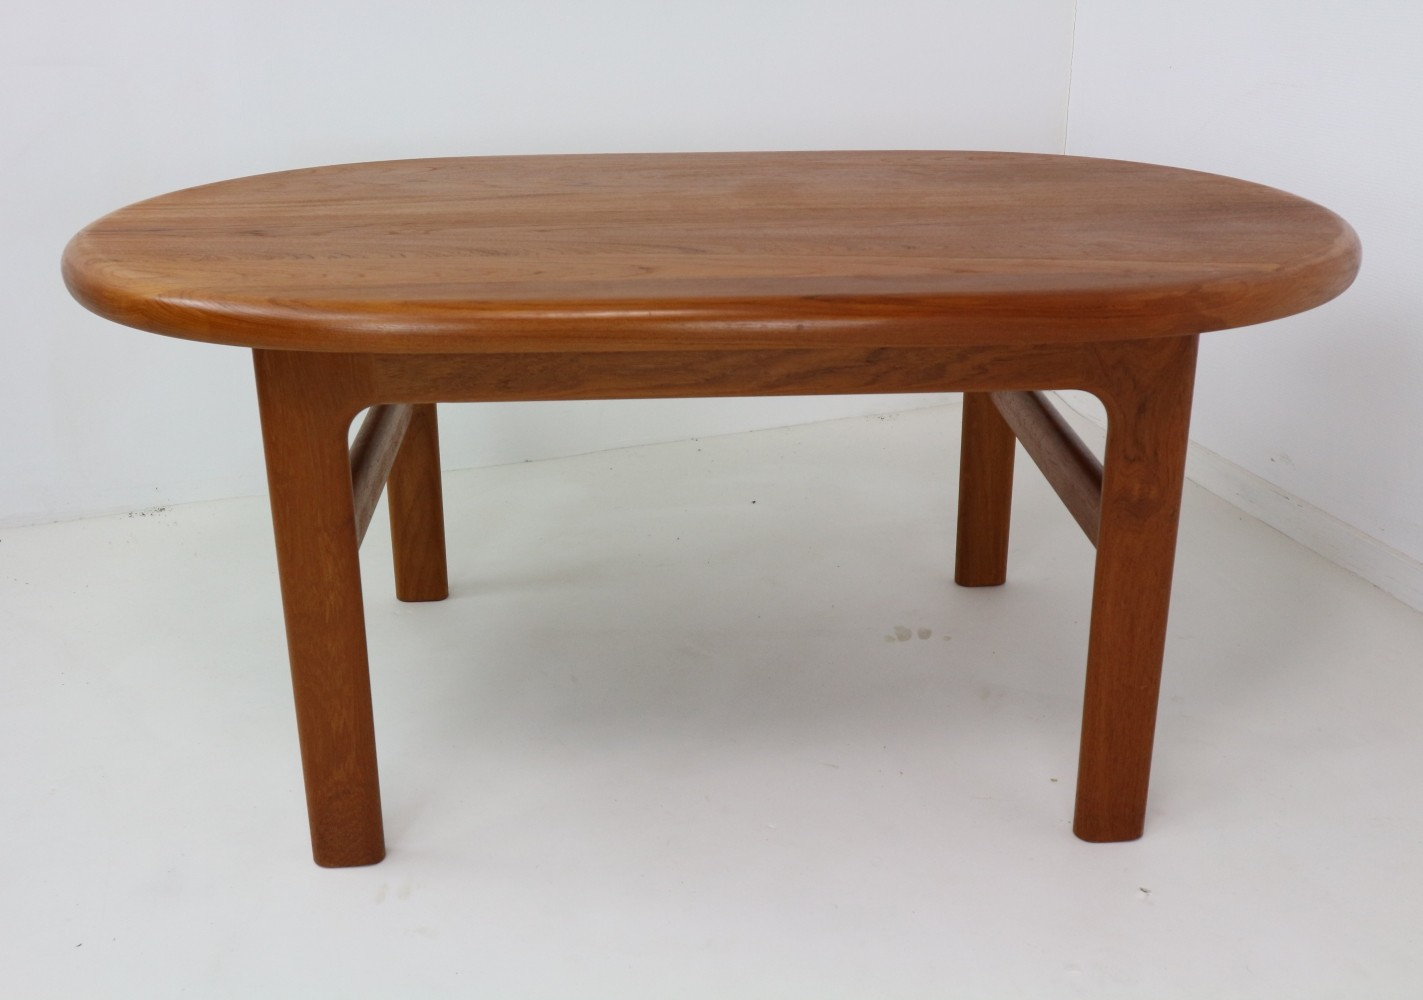 Danish teak coffee table from niels bach 1960s 69851 danish teak coffee table from niels bach 1960s geotapseo Images